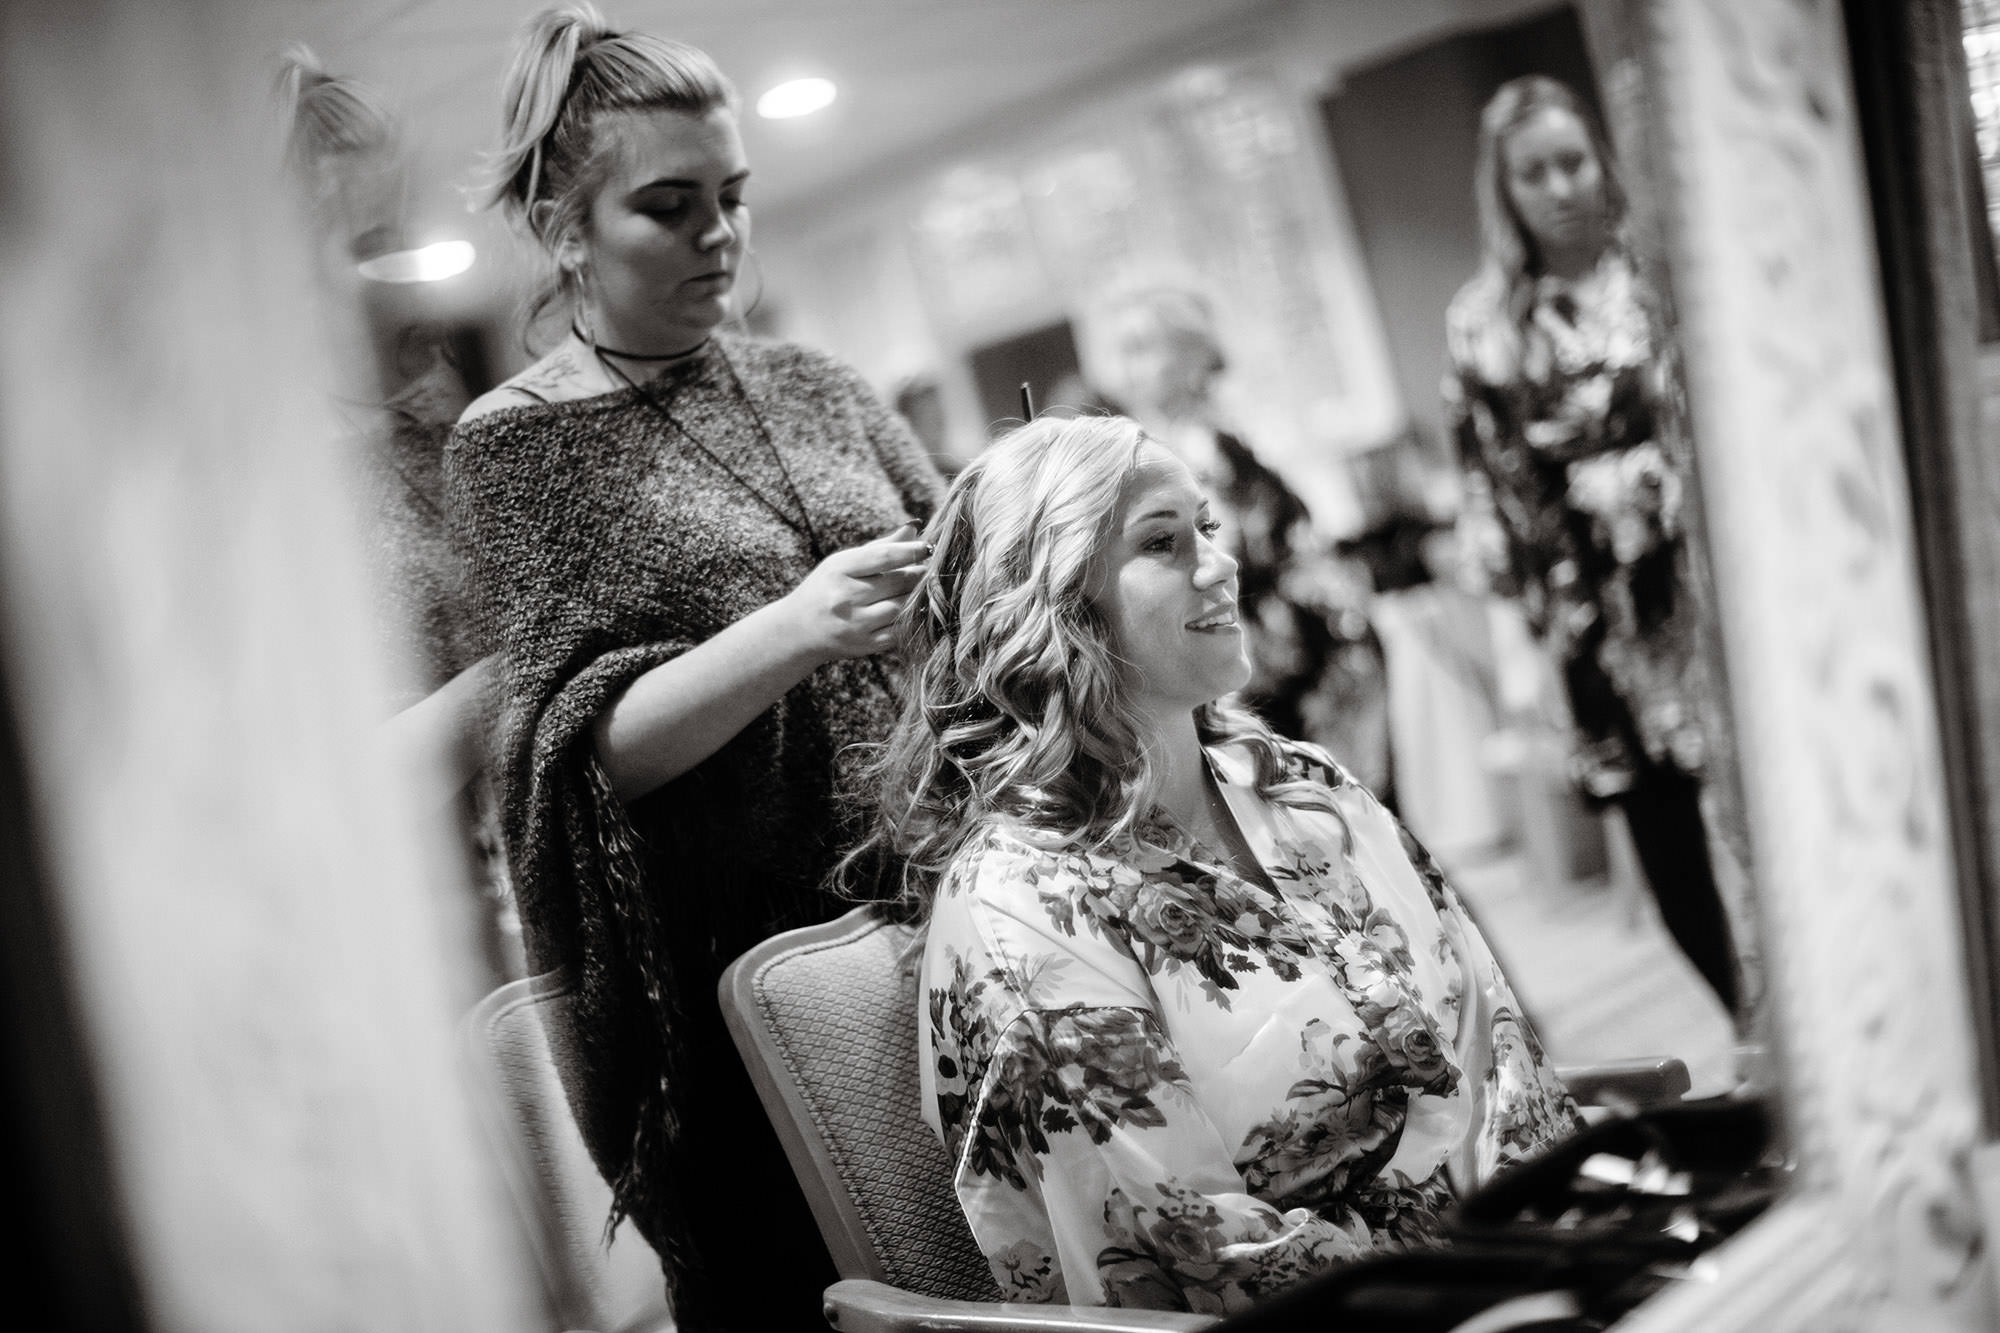 The Bride gets her hair done prior to the ceremony at Wequassett Resort.